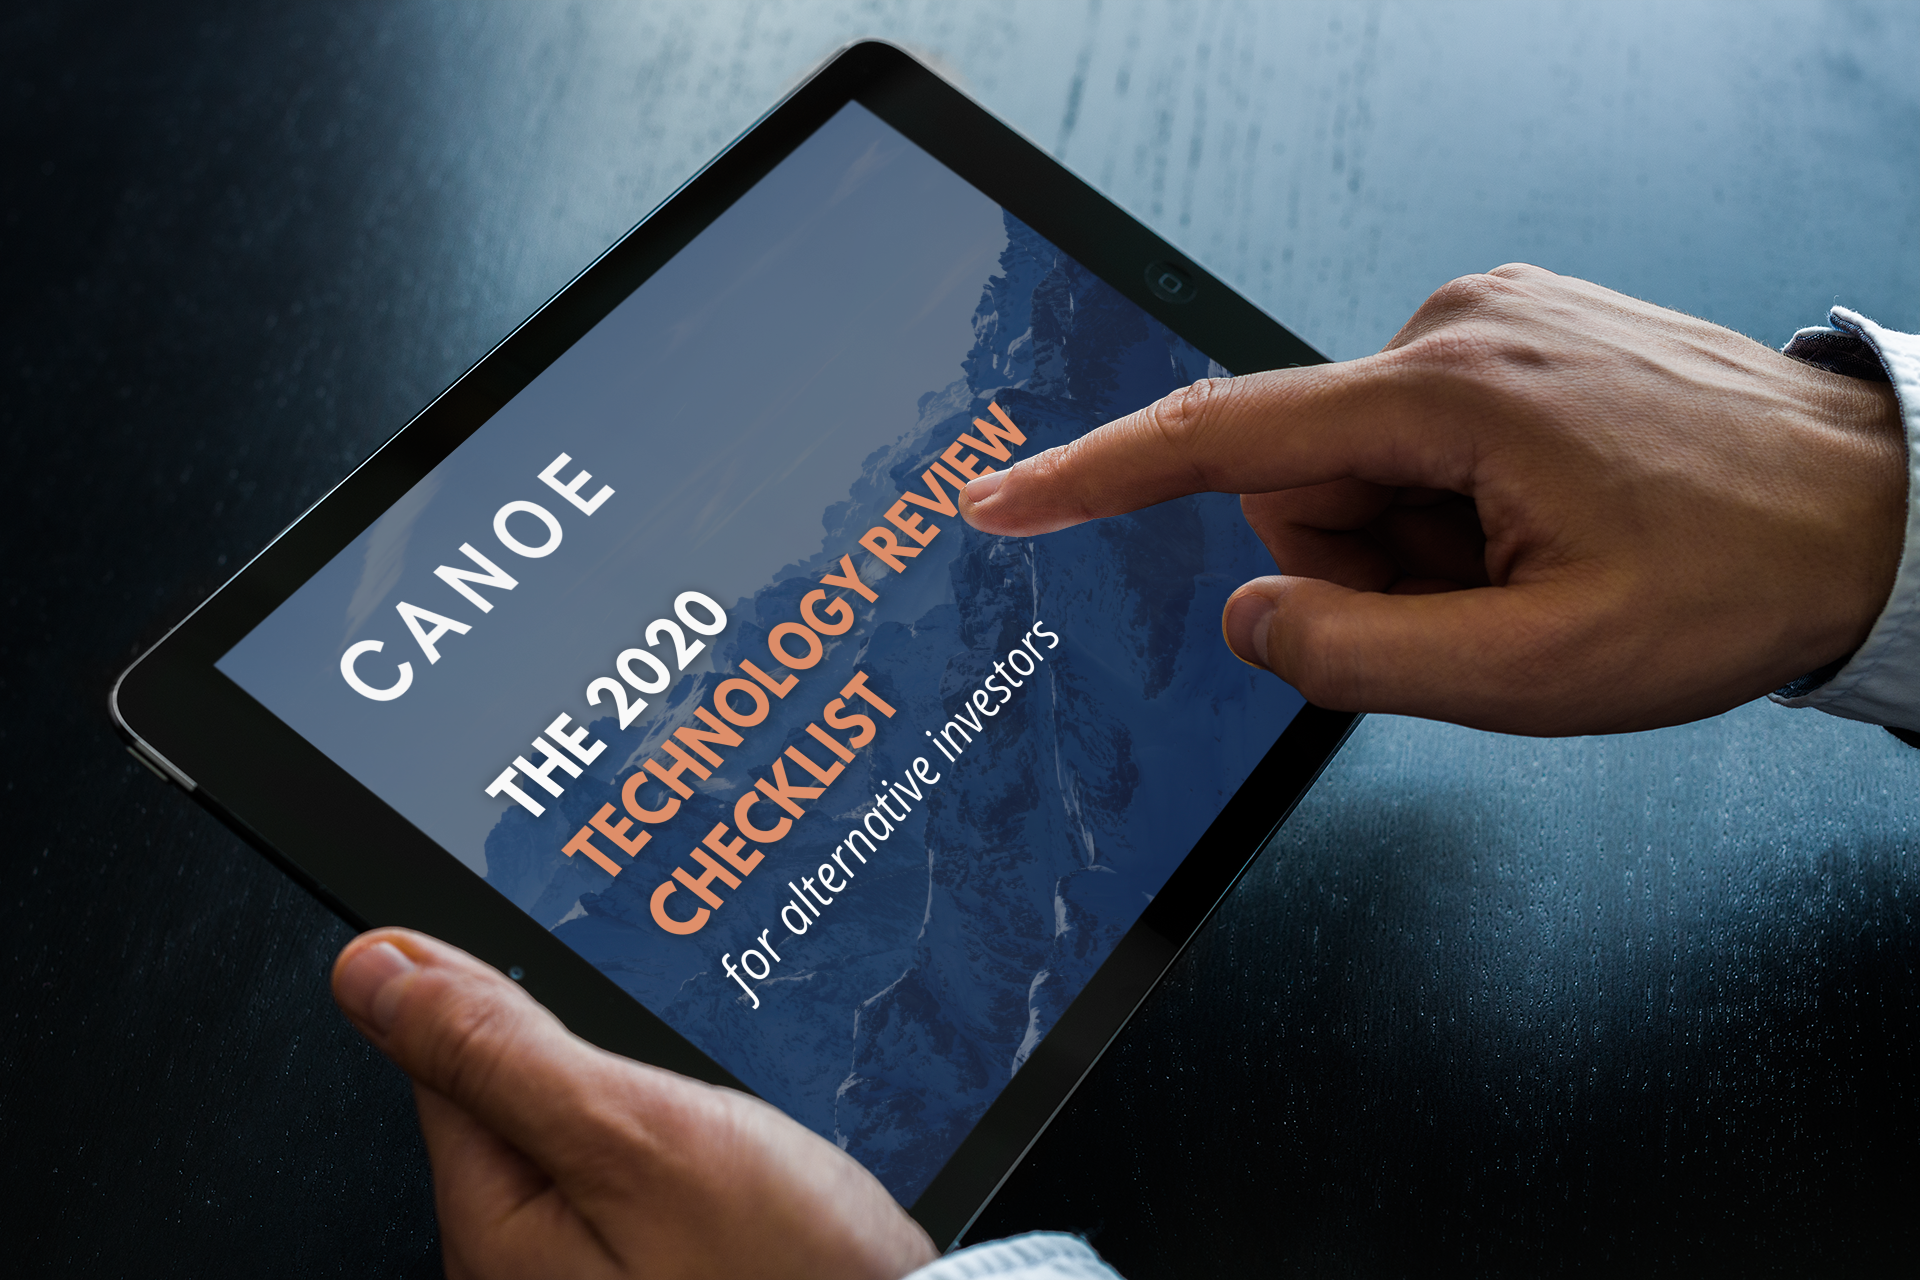 Canoe 2020 Year End Tech Review Checklist Download for Alternative Investors